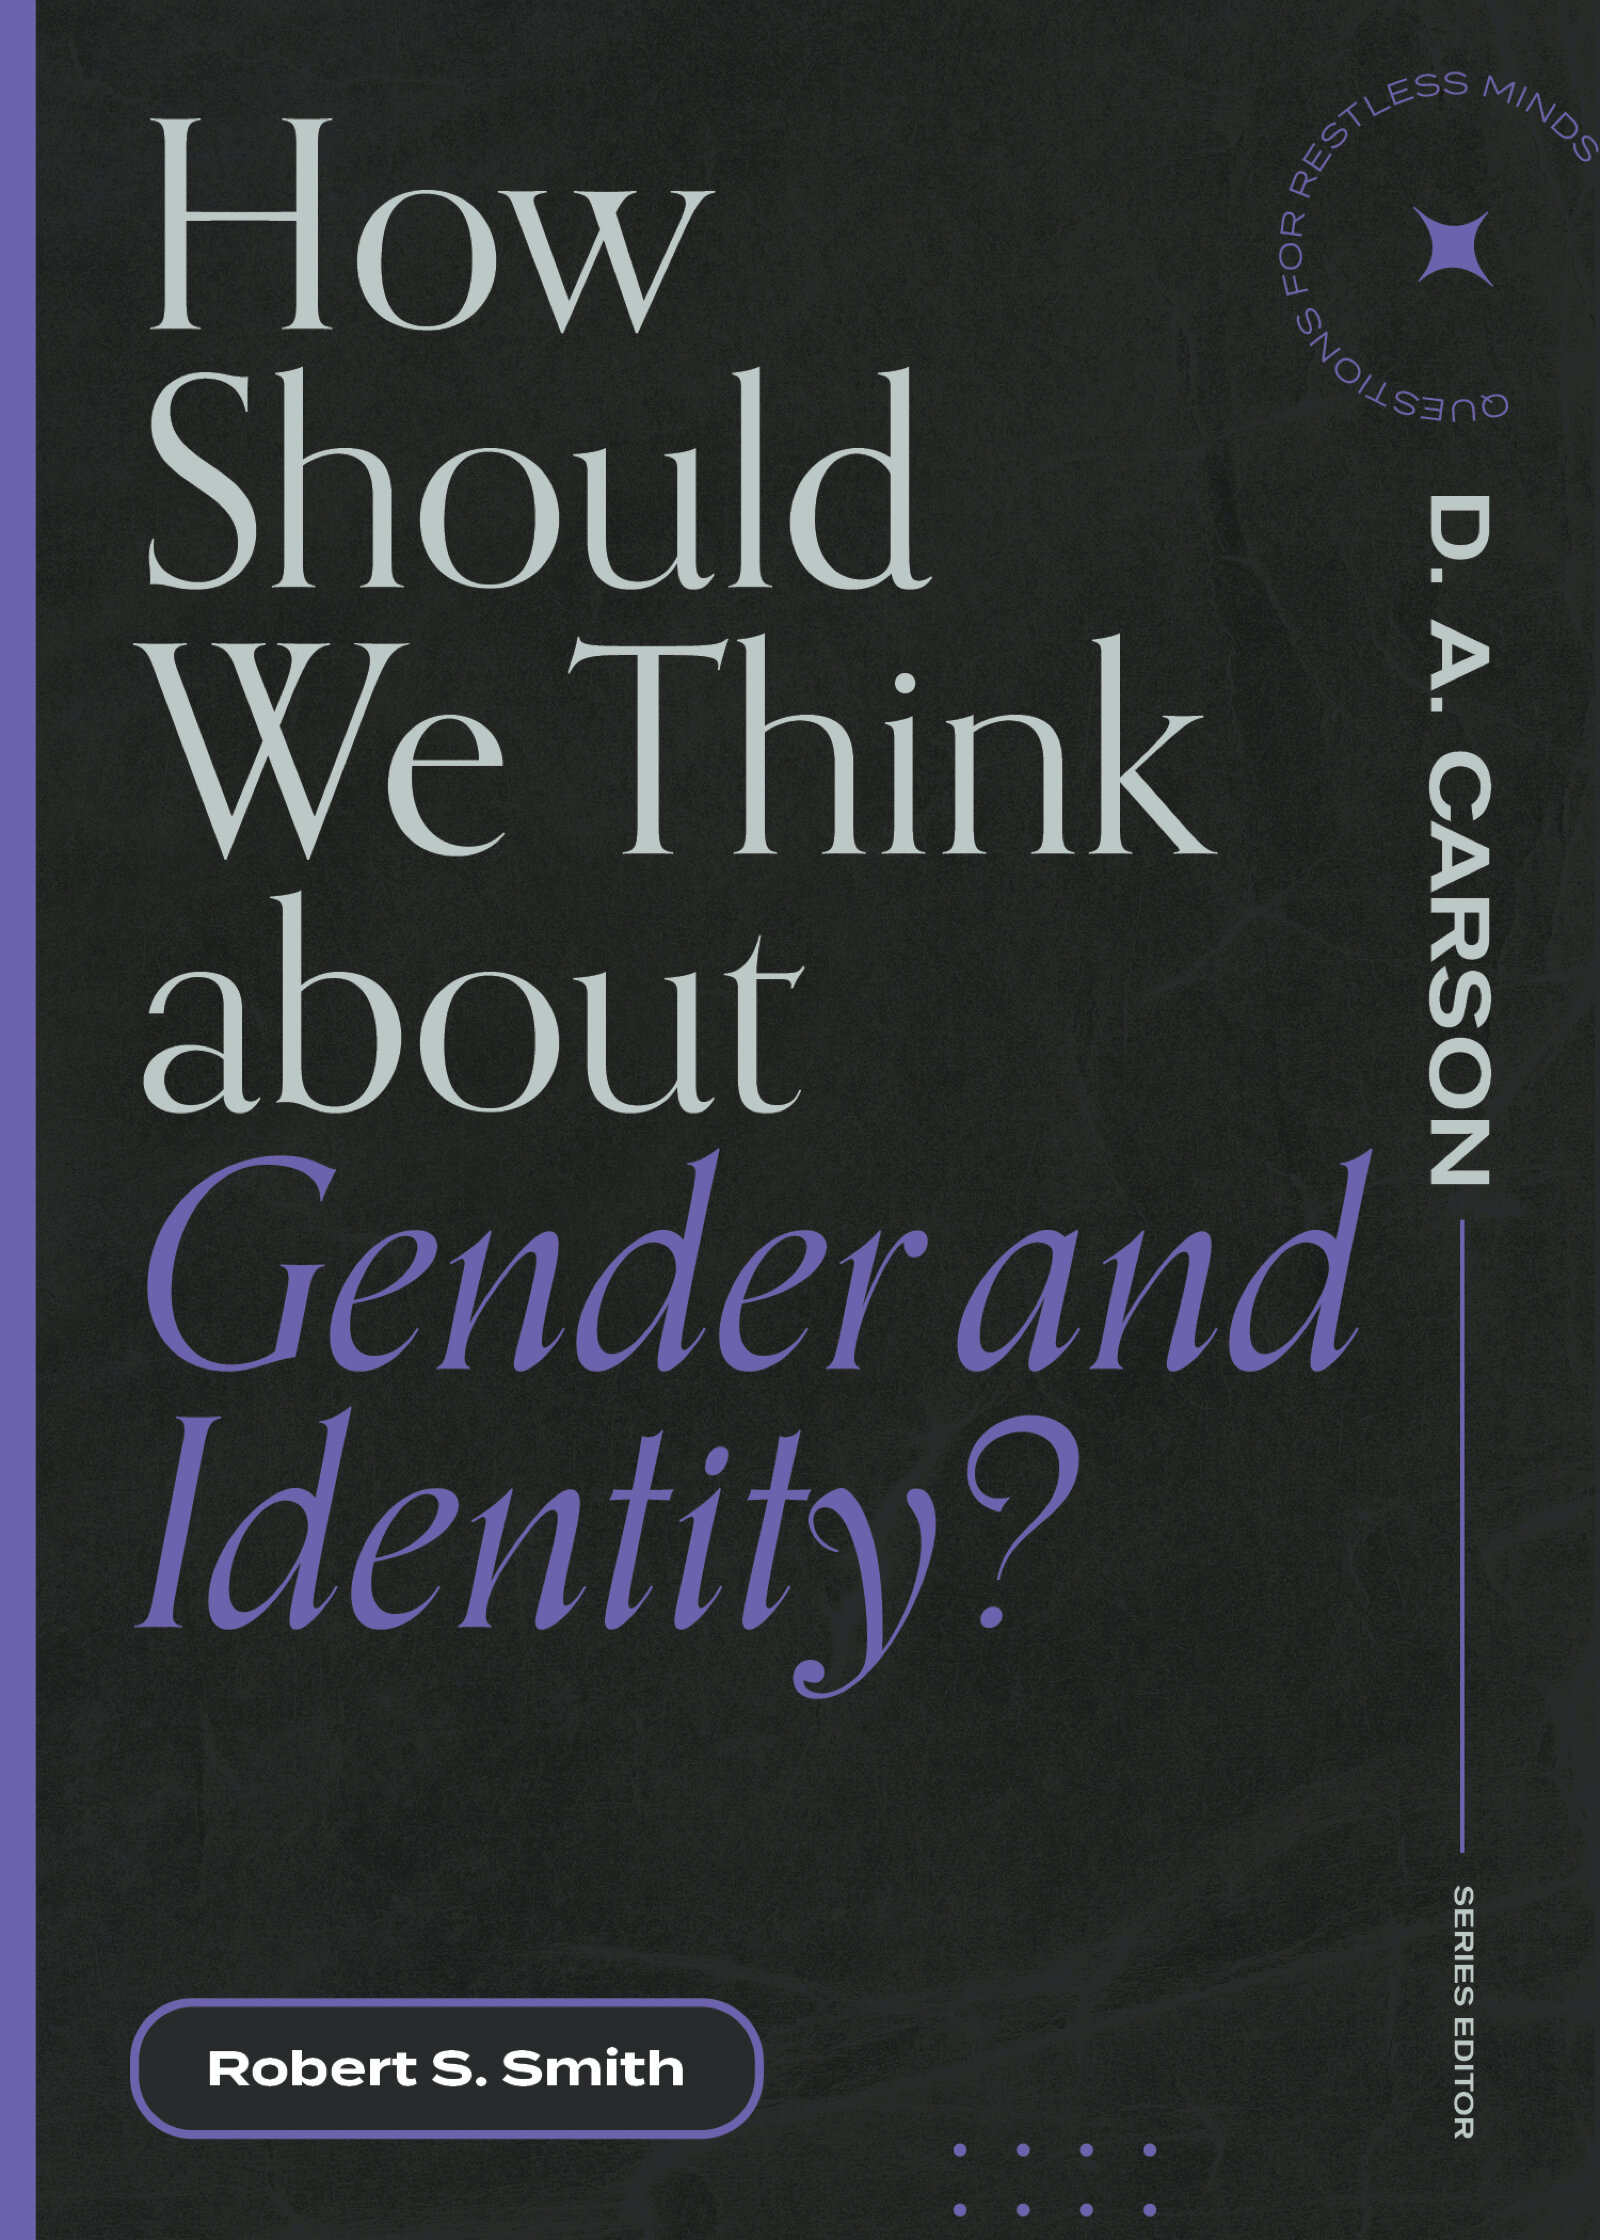 How Should We Think about Gender and Identity?